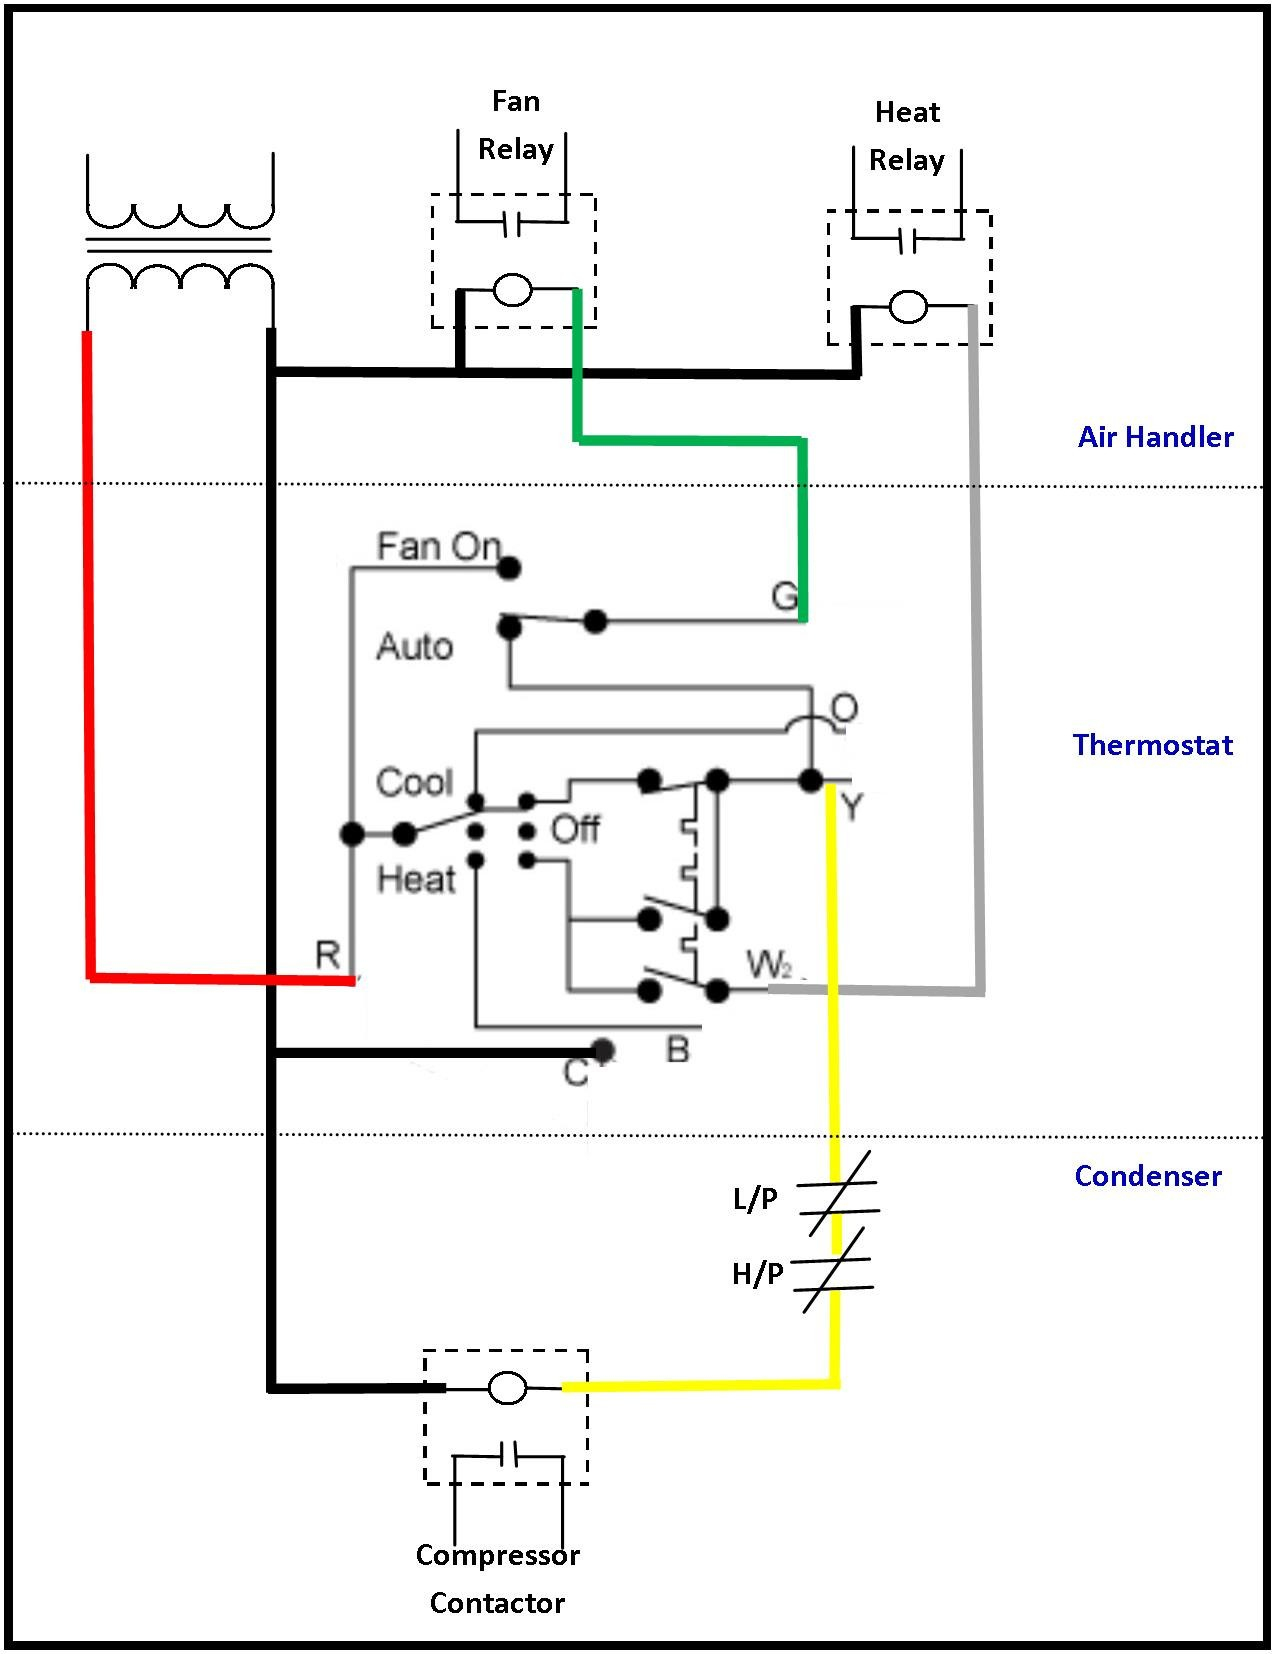 DIAGRAM] York Thermostat Wiring Diagram FULL Version HD Quality Wiring  Diagram - FT5WIRING.CONCESSIONARIABELOGISENIGALLIA.ITconcessionariabelogisenigallia.it